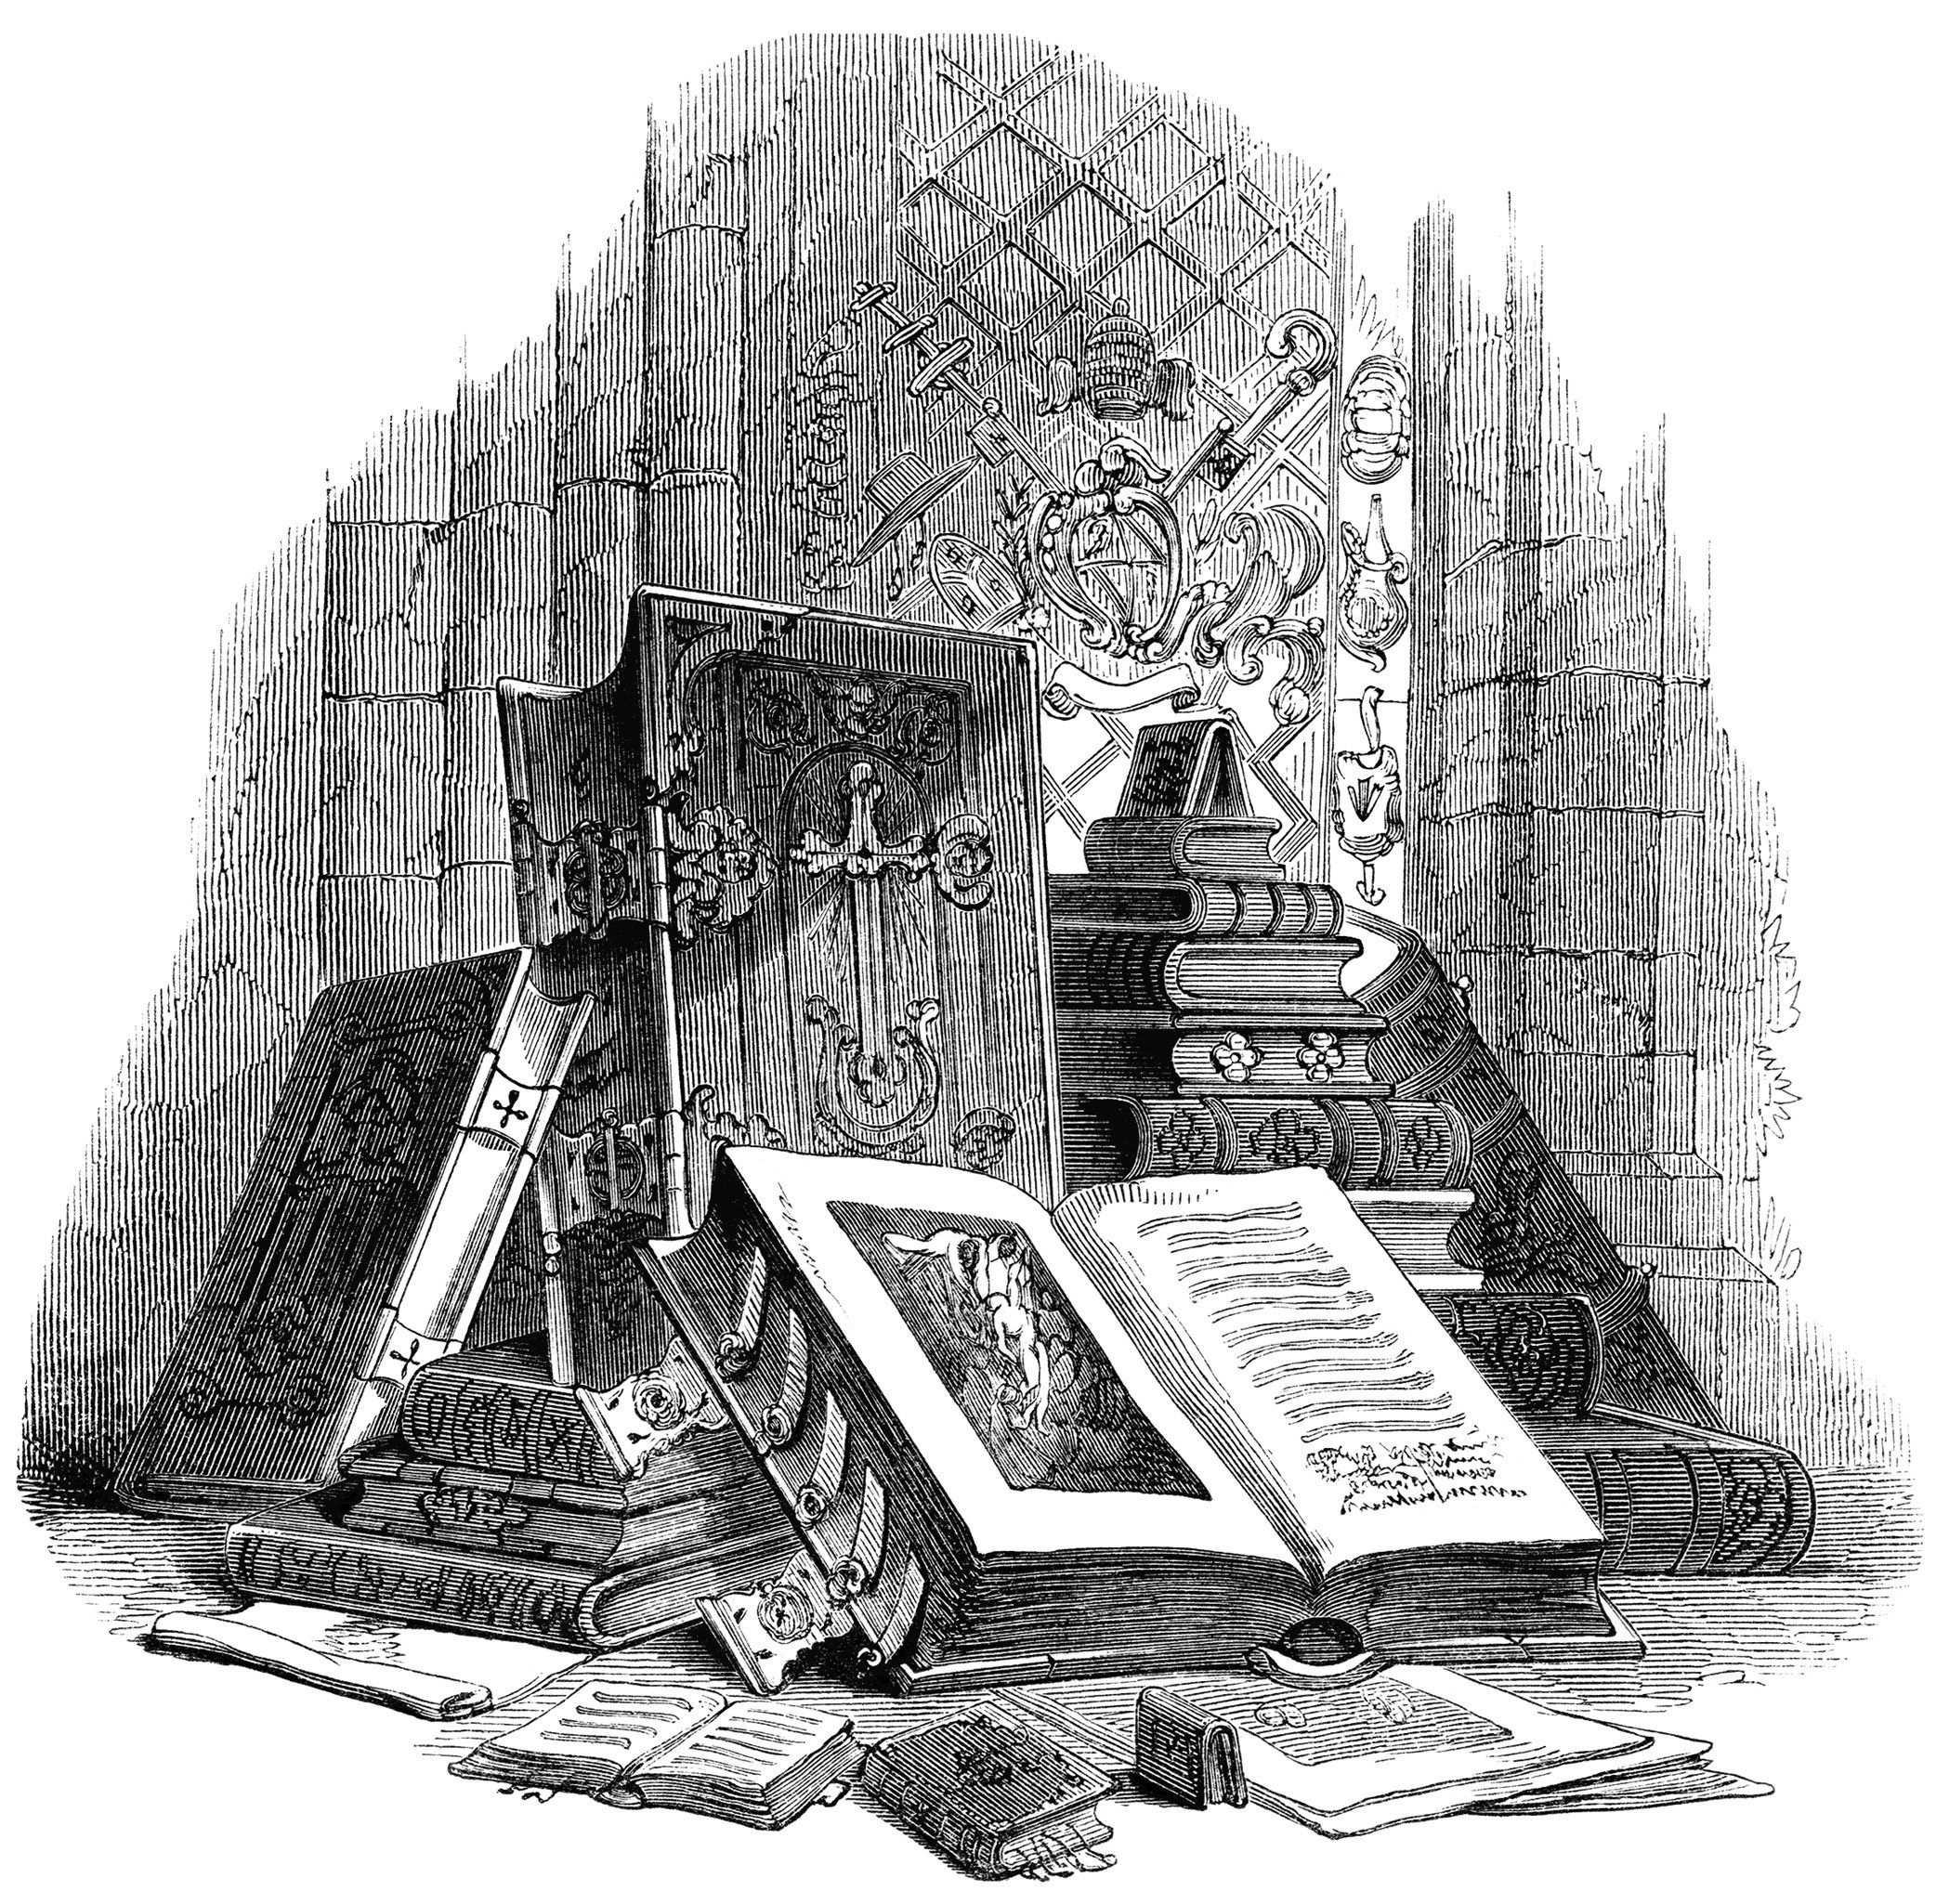 Vintage Book Clip Art Black And White Clipart Stack Of Books Engraving Antique Case Image Display Illustration